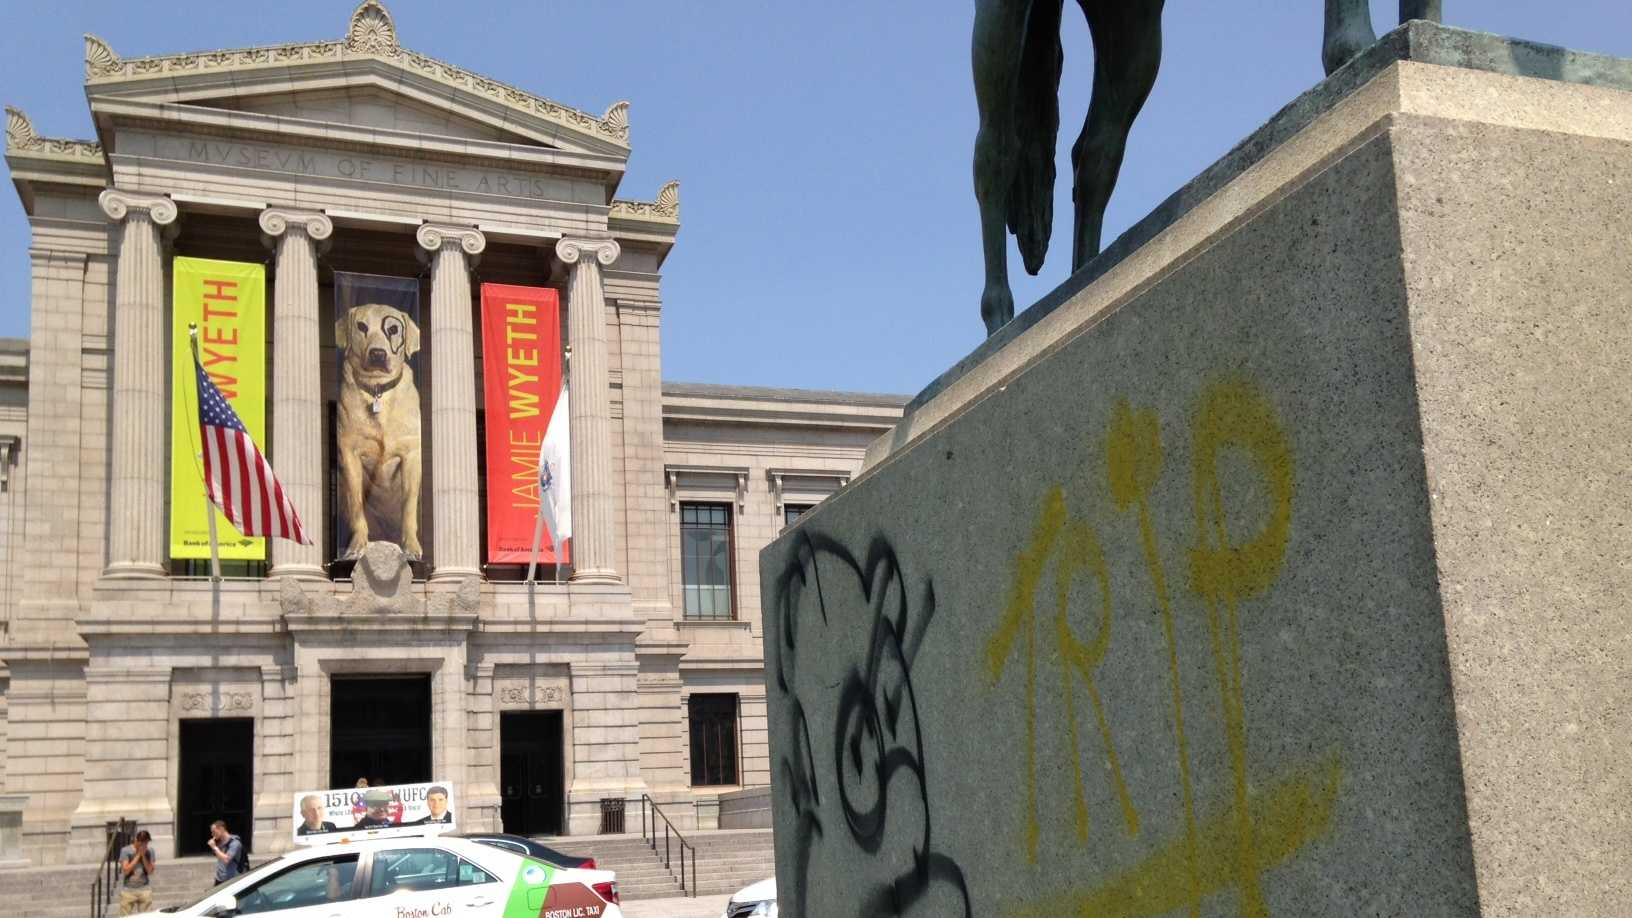 Images of Homer Simpson and other graffiti were found spray painted Friday on exterior walls of Boston's Museum of Fine Arts and on the base of a statue at the main entrance.